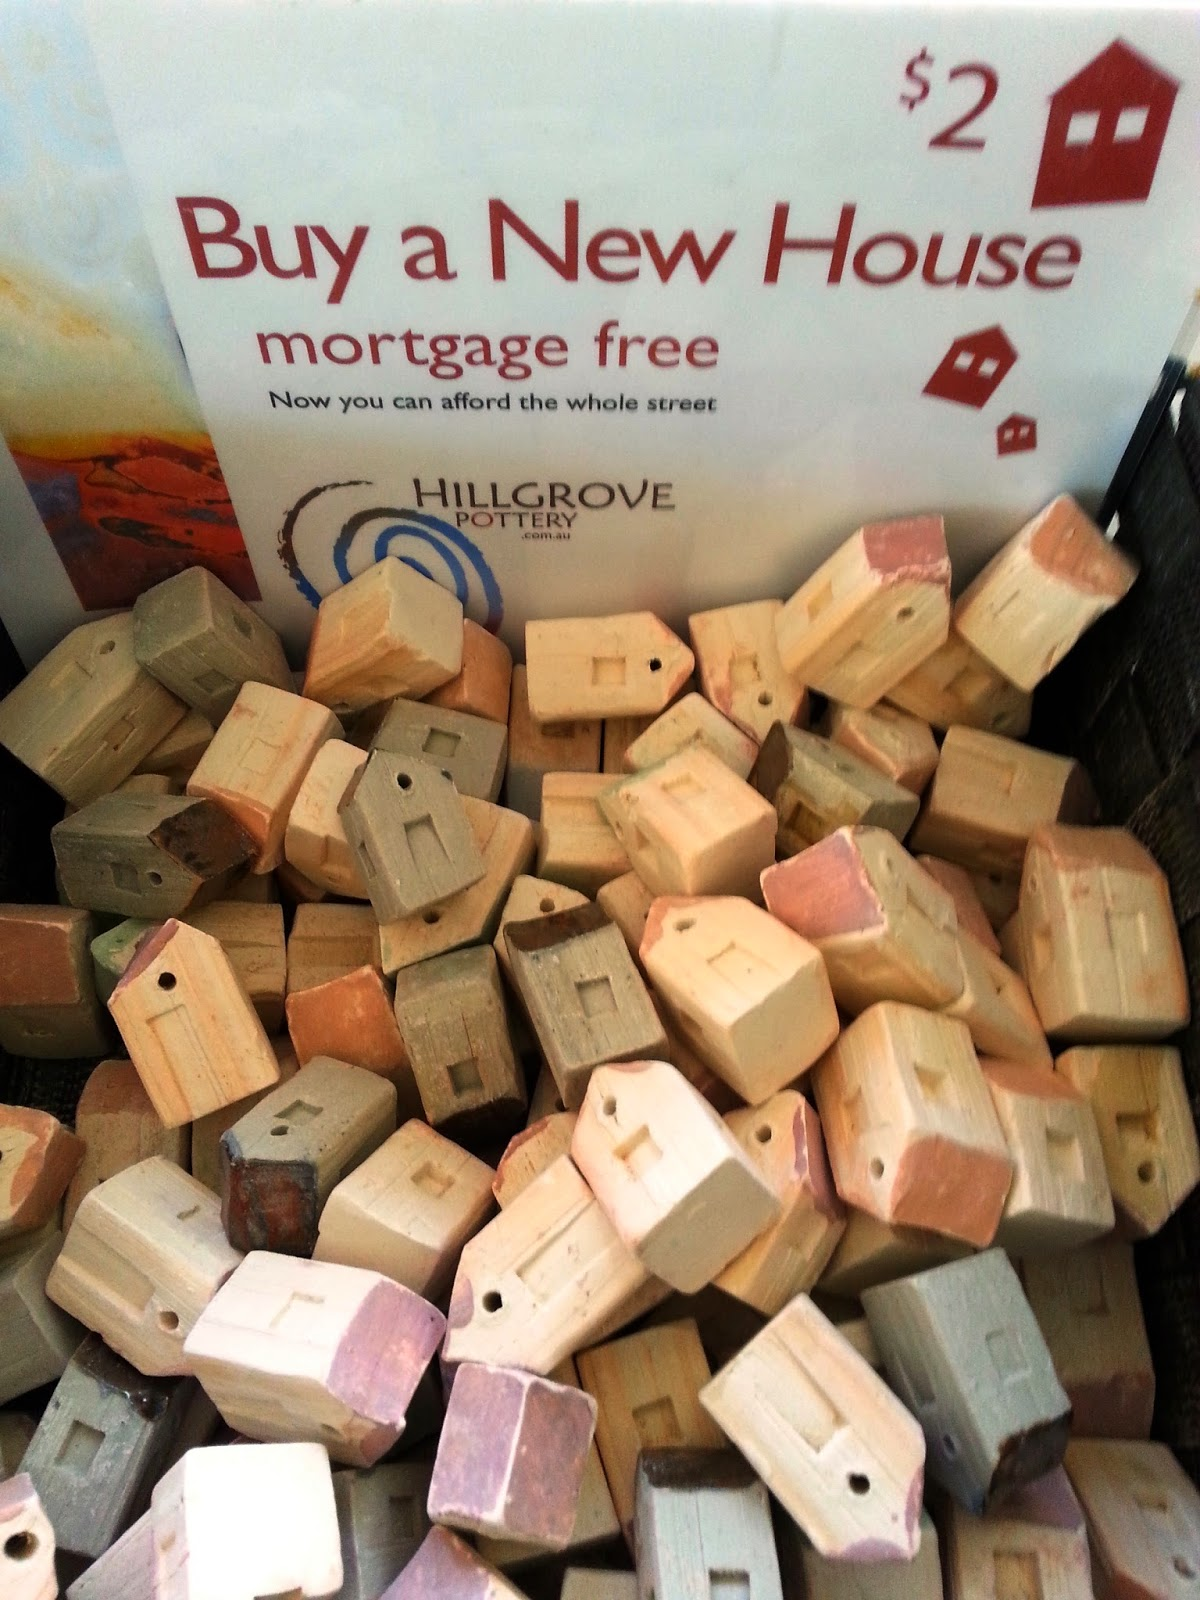 A large number of small clay houses, all jumbled together under a sign which says '$2 Buy a New House mortgage free'